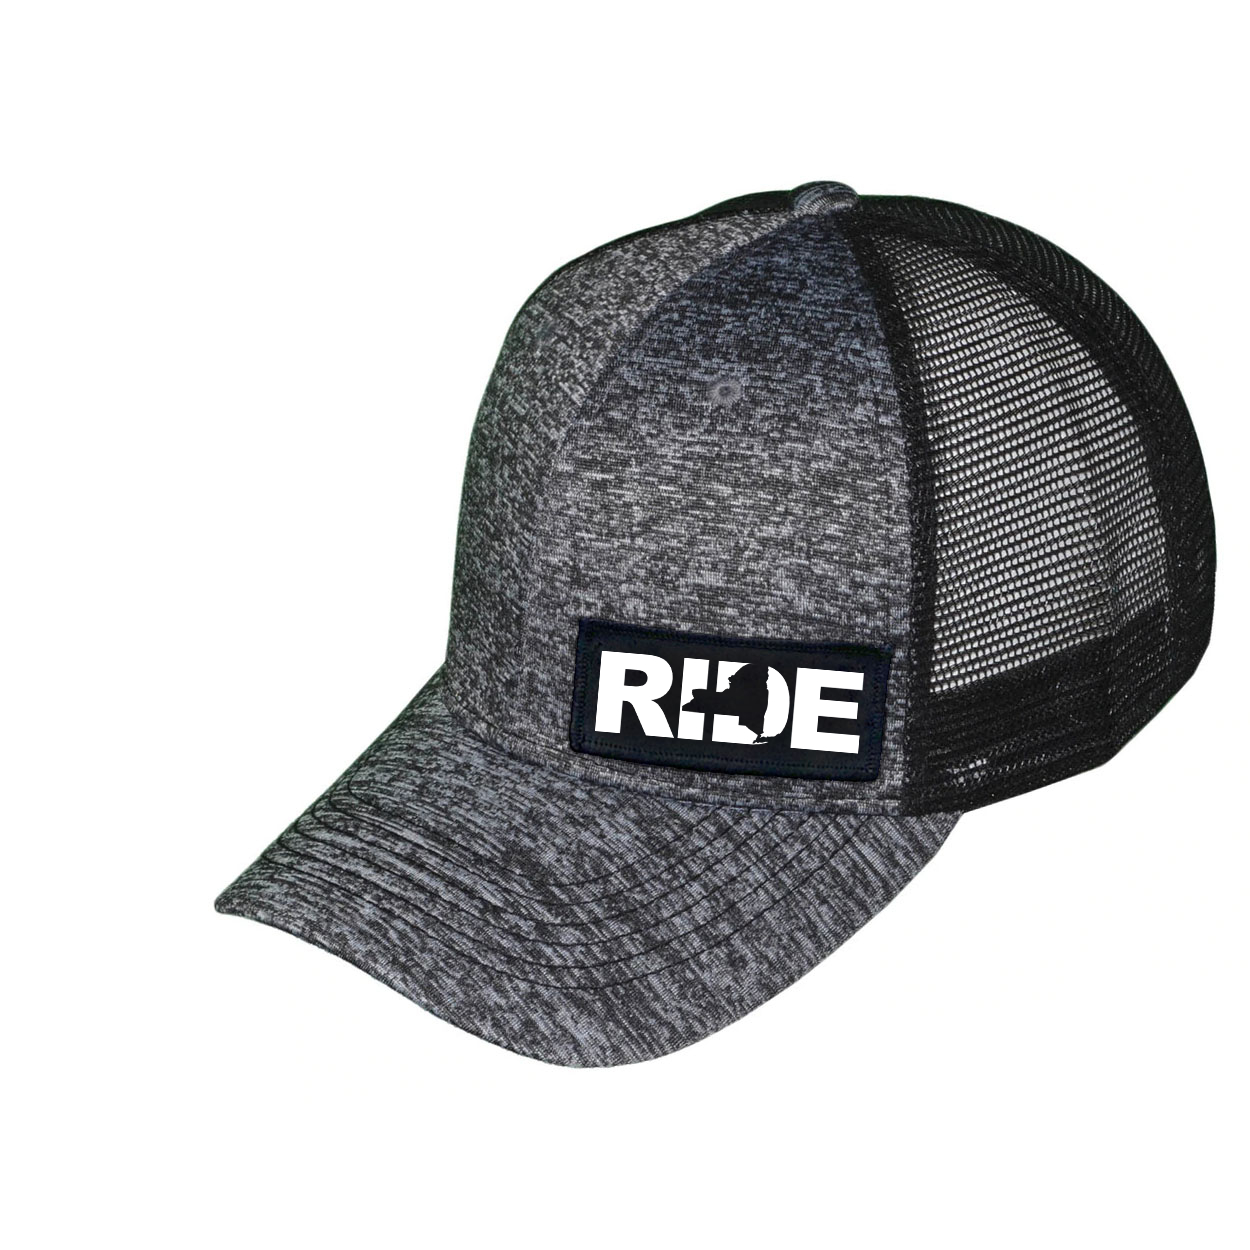 Ride New York Night Out Woven Patch Melange Snapback Trucker Hat Gray/Black (White Logo)